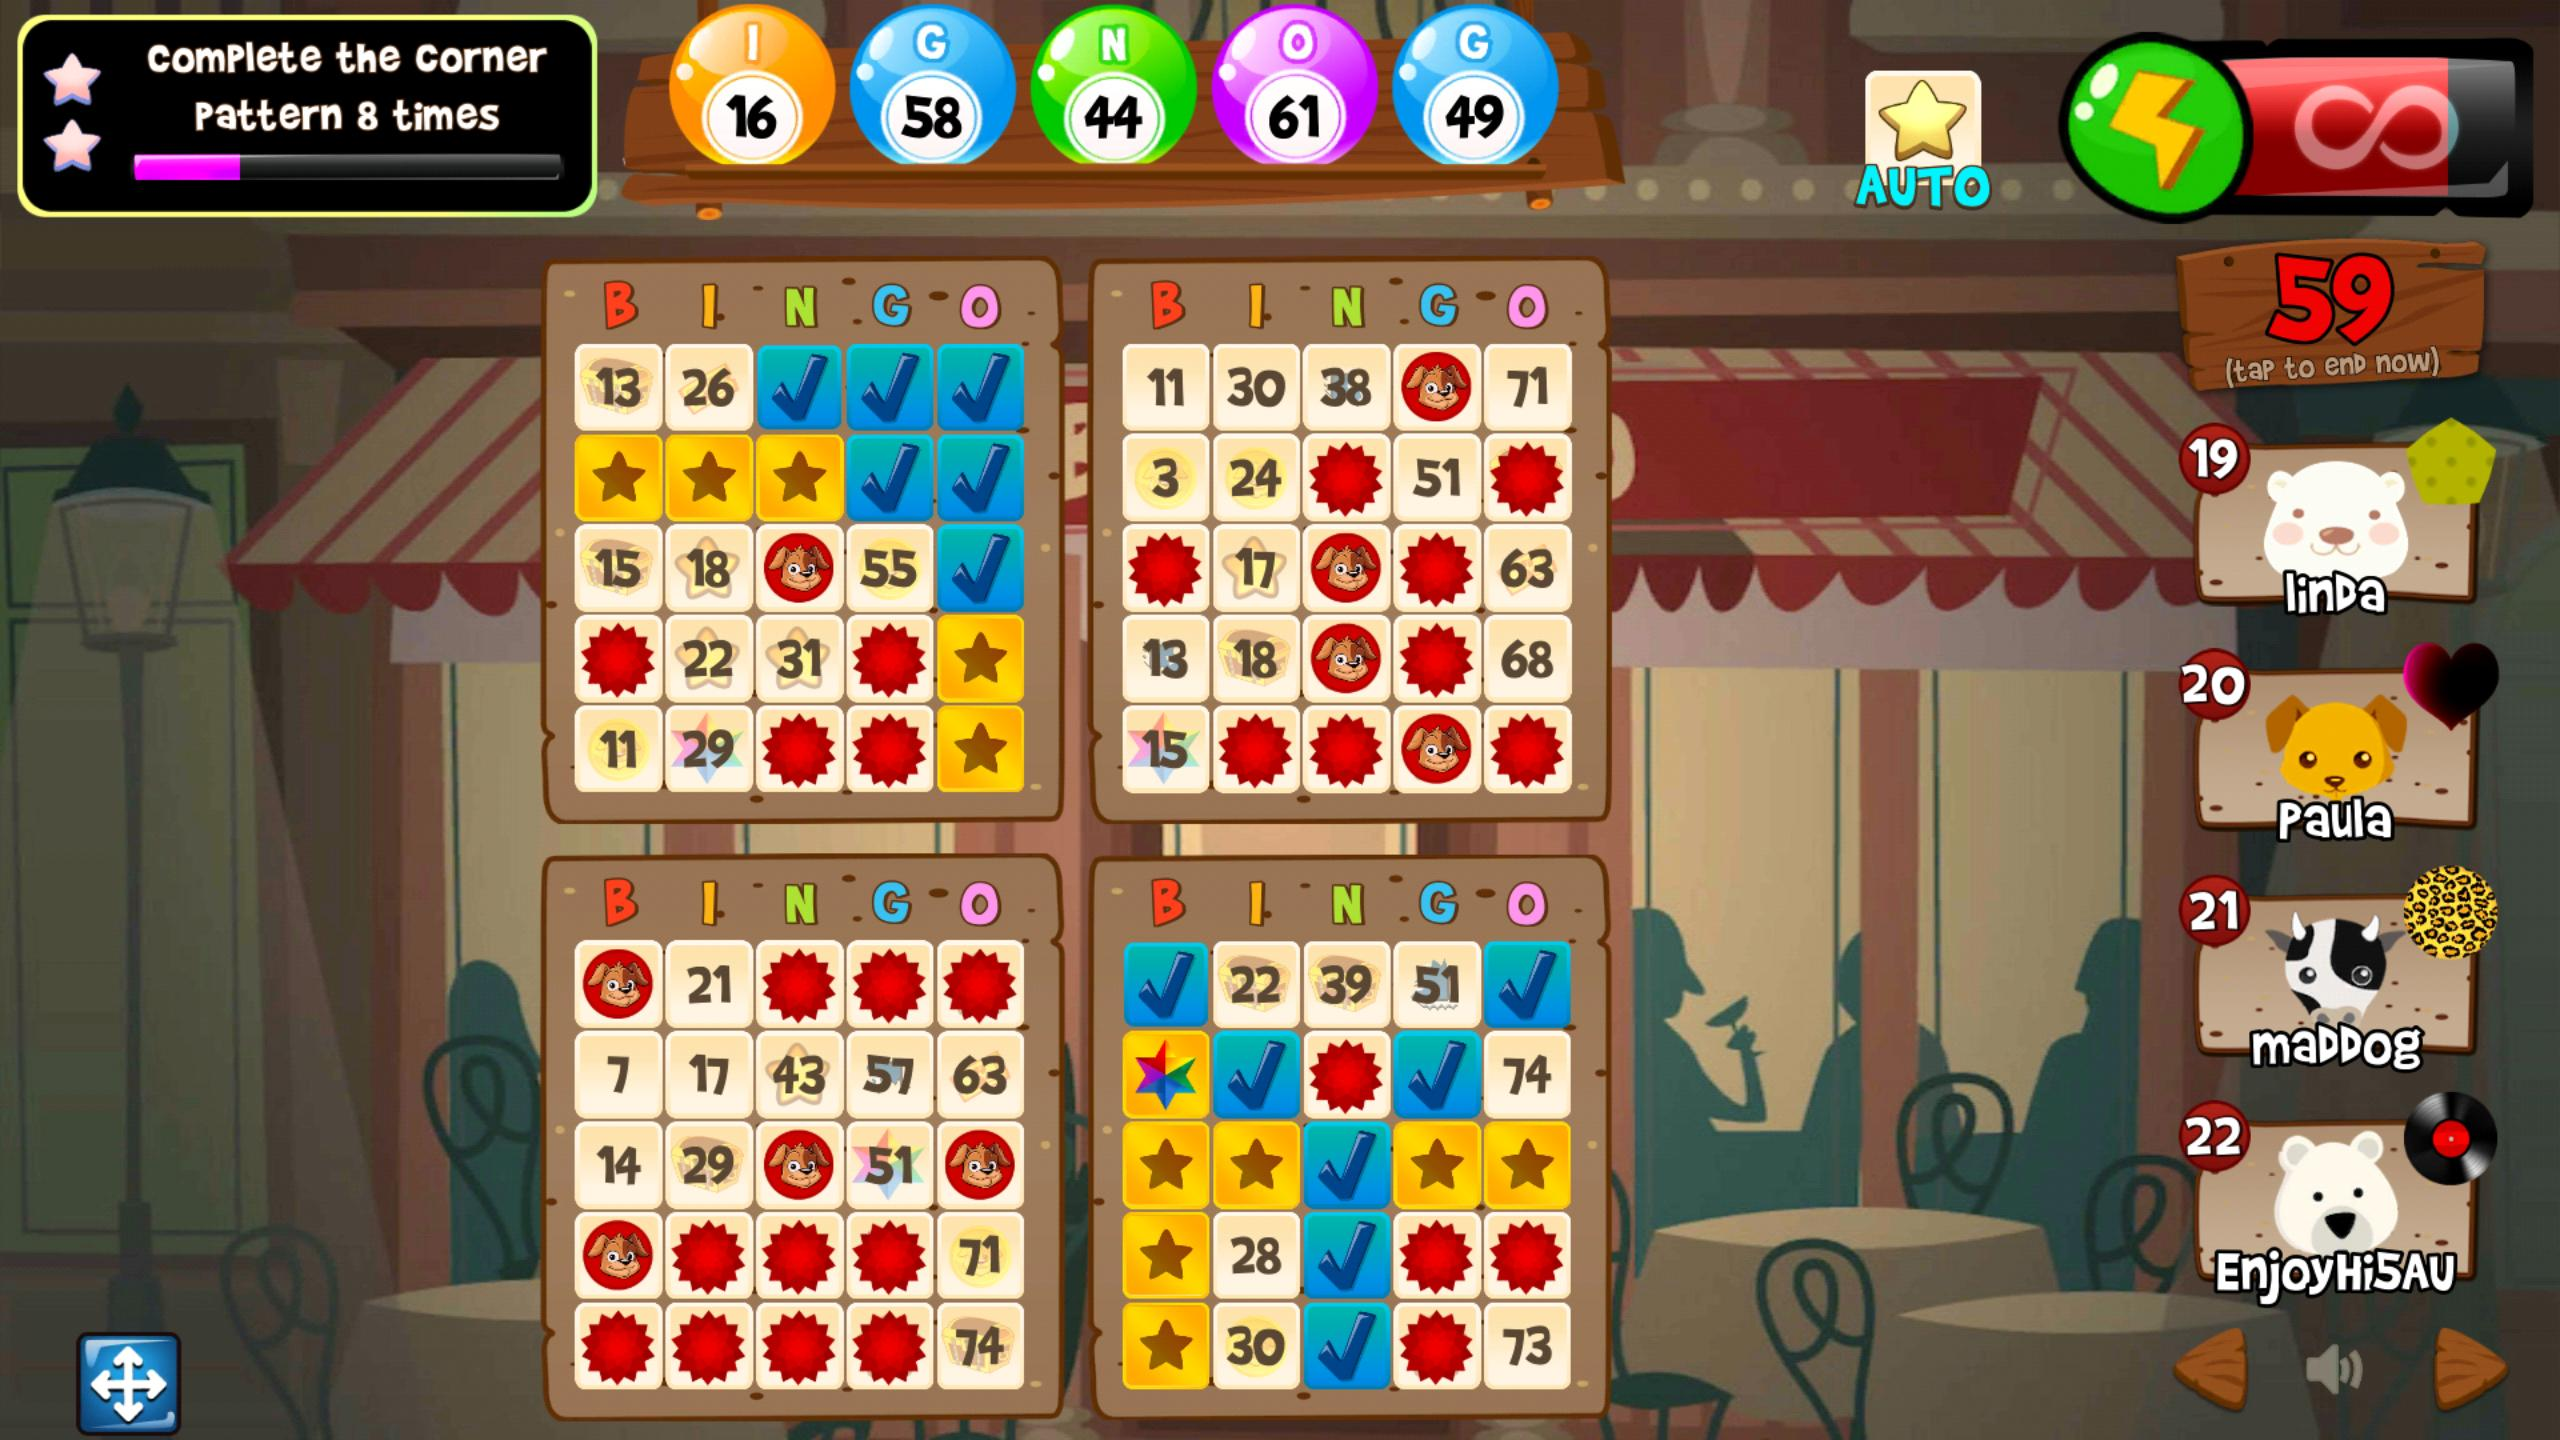 Bingo Abradoodle - Bingo Games Free to Play! 3.0.02 Screenshot 3